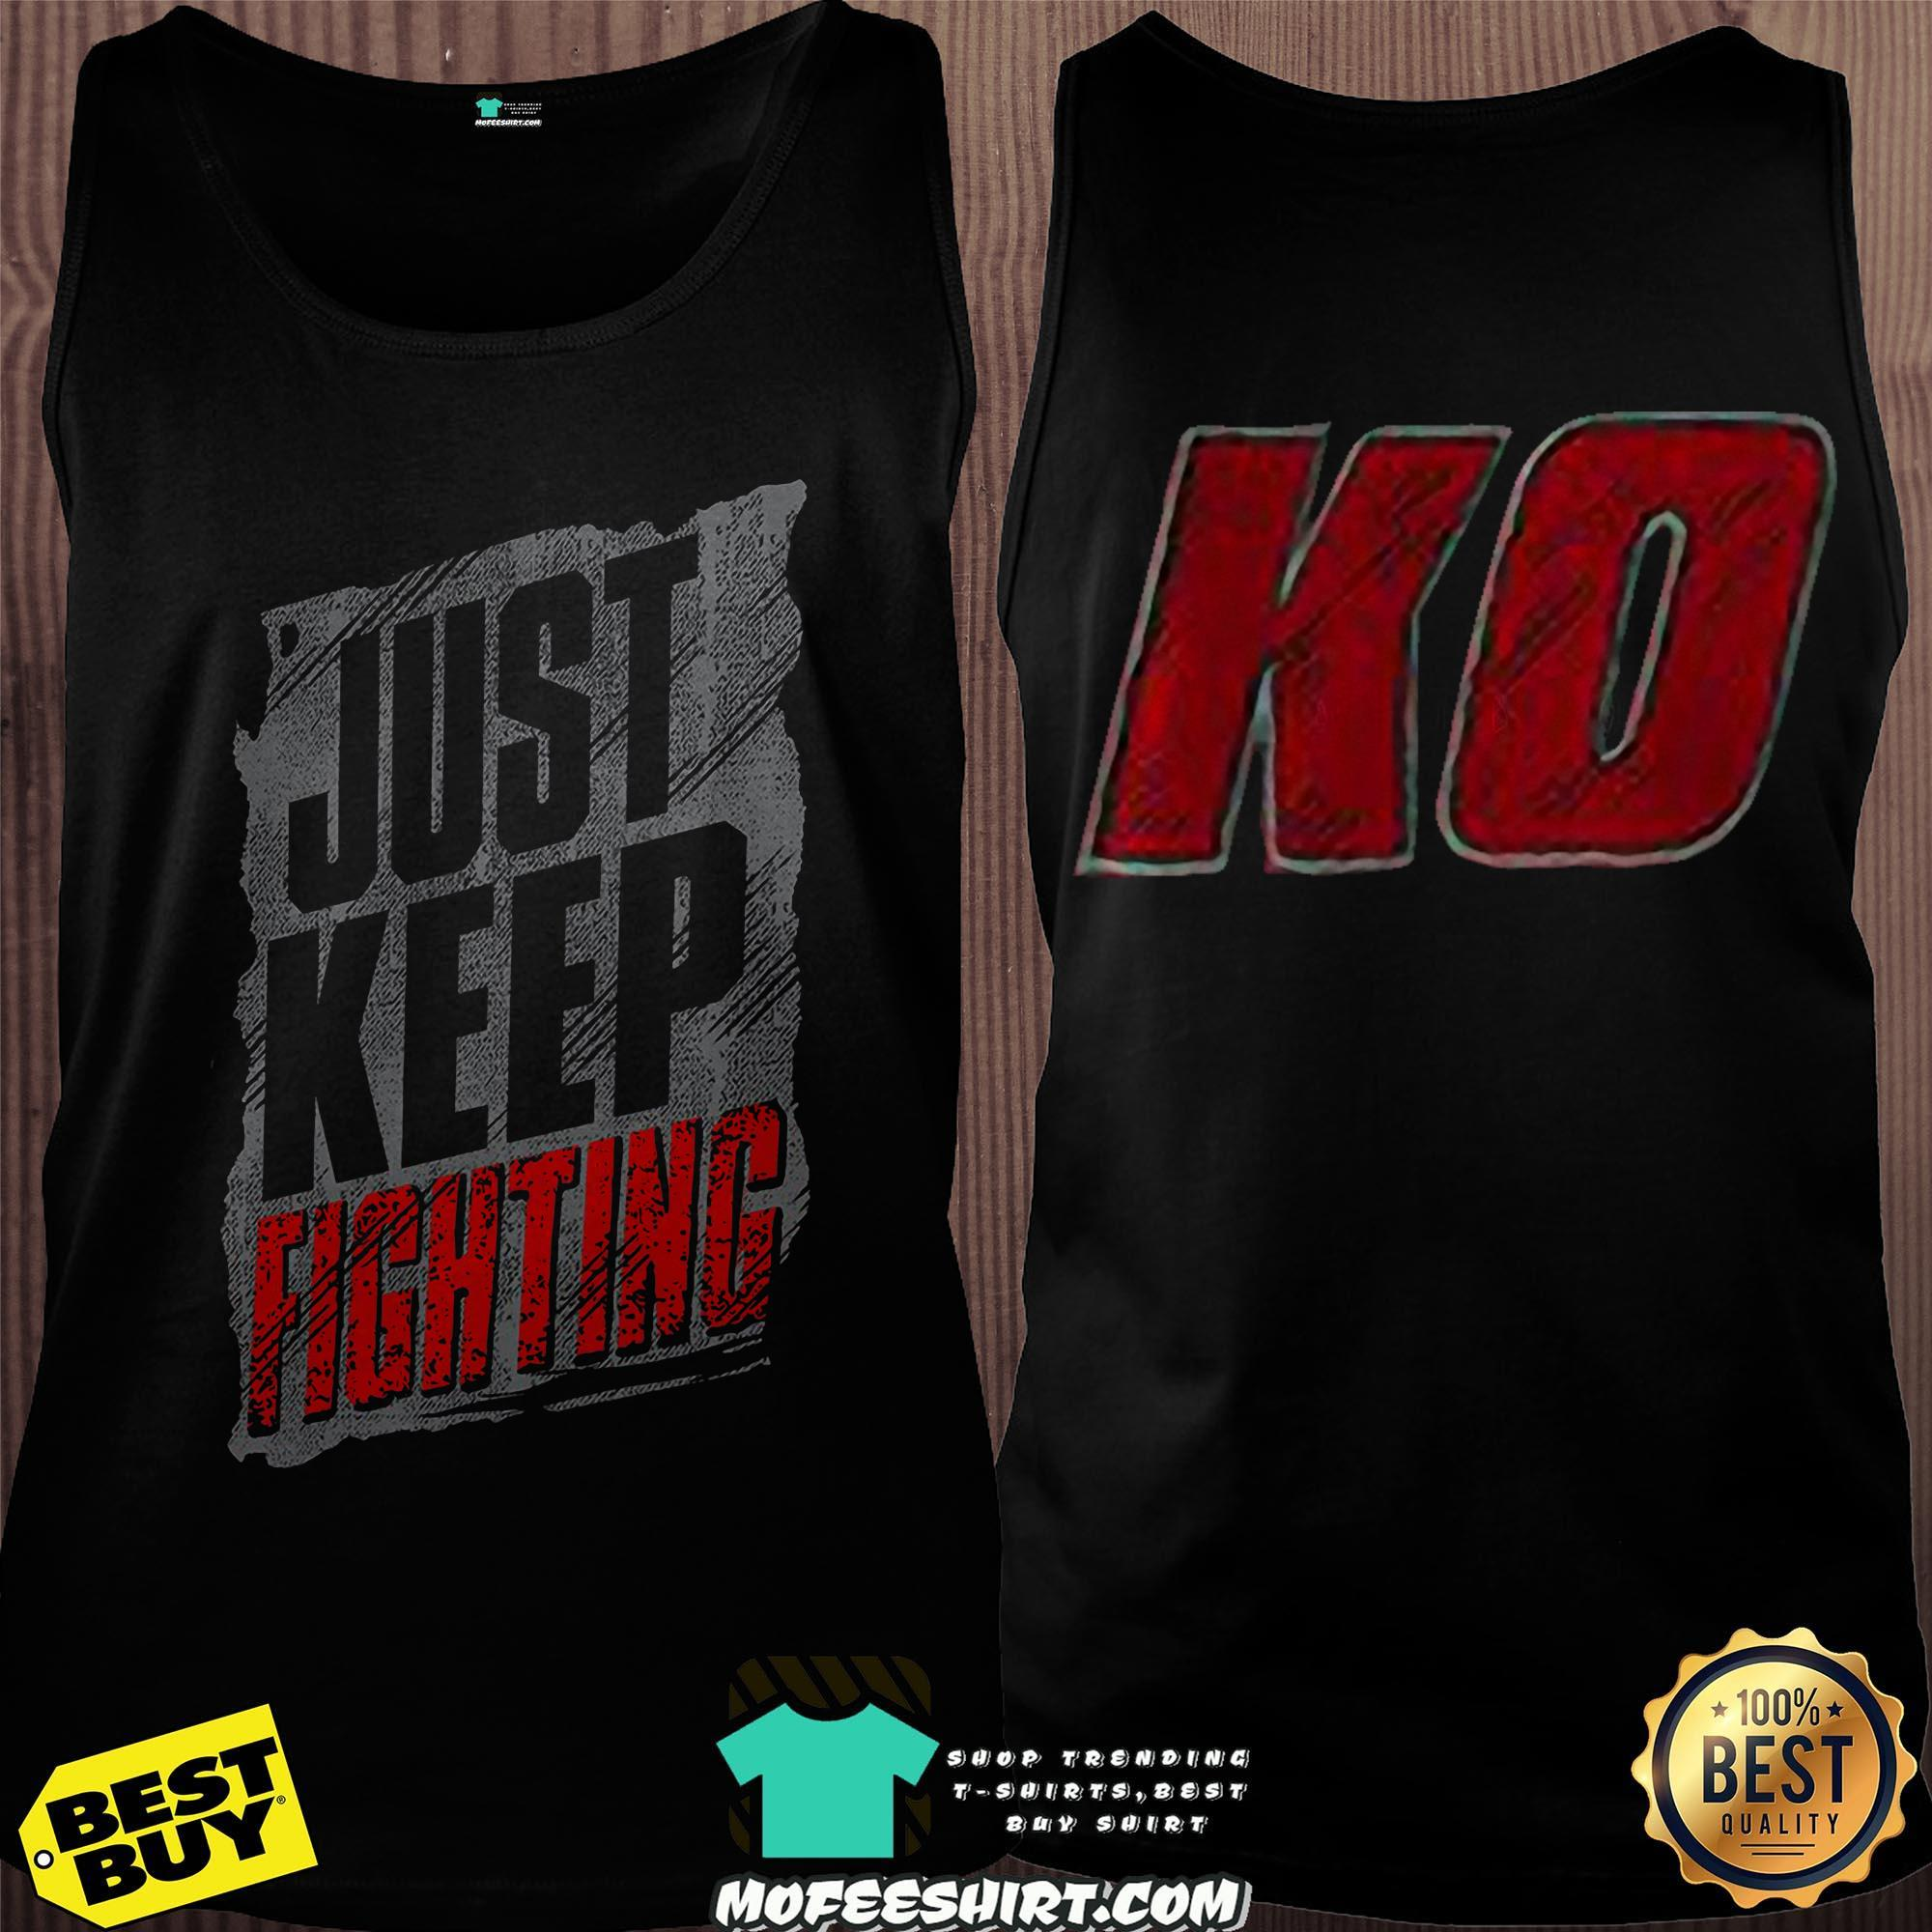 kevin owens just keep fighting tank top 2 - Kevin Owens Just Keep Fighting Shirt